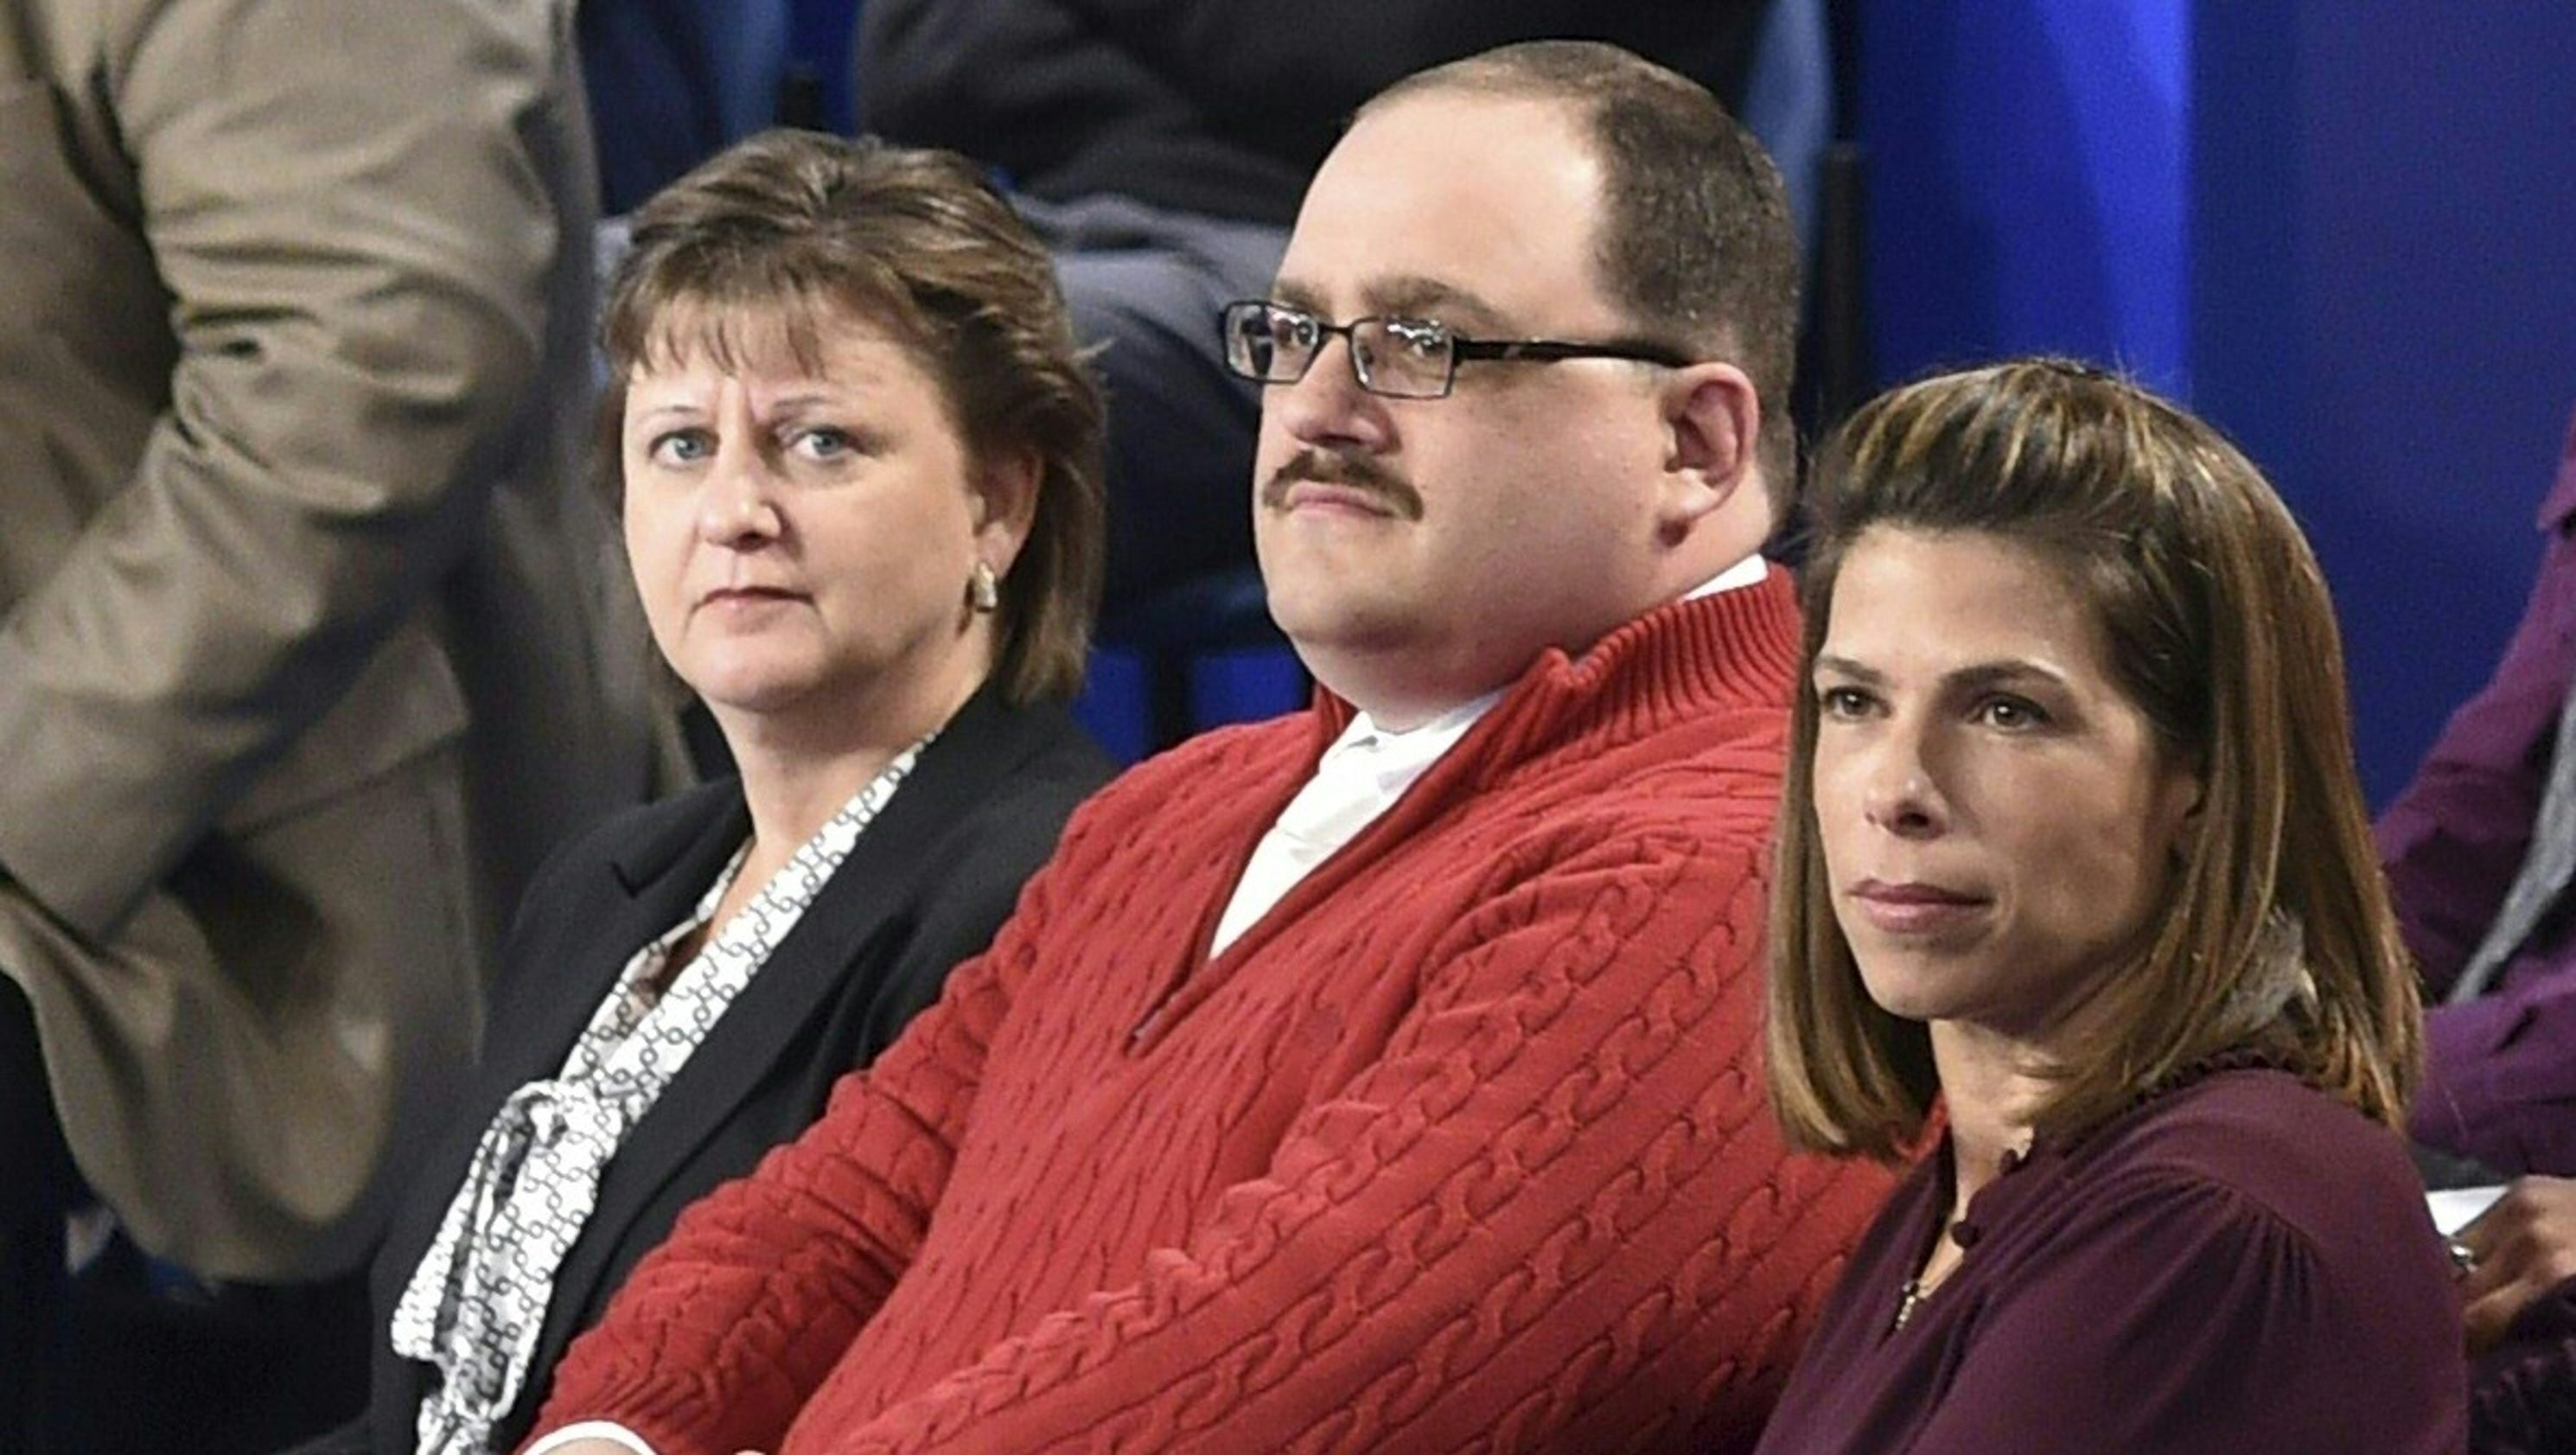 Ken Bone and his red sweater will be covering debate for Jimmy Kimmel